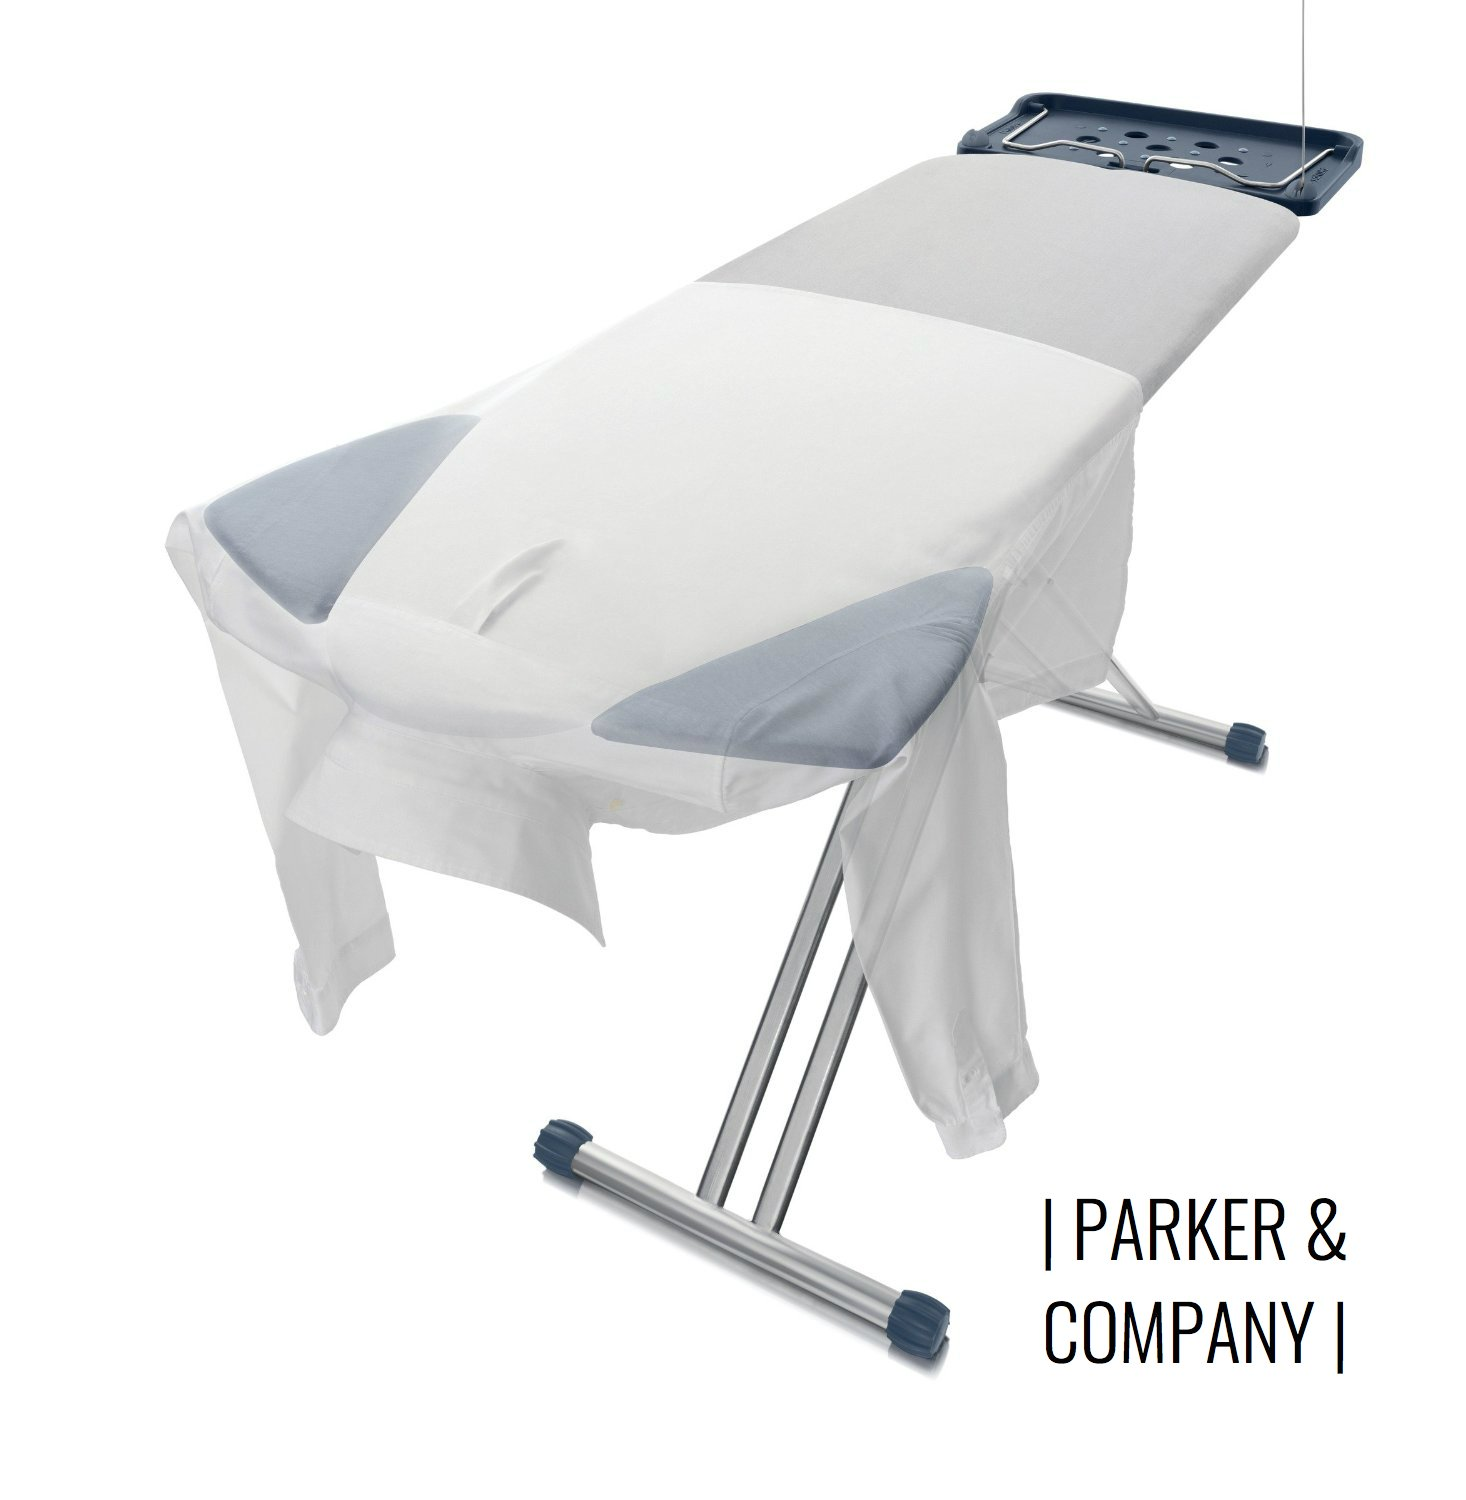 Fold up ironing board - Amazon Com Parker Extra Wide Ironing Pro Board With Shoulder Wing Folding Home Kitchen